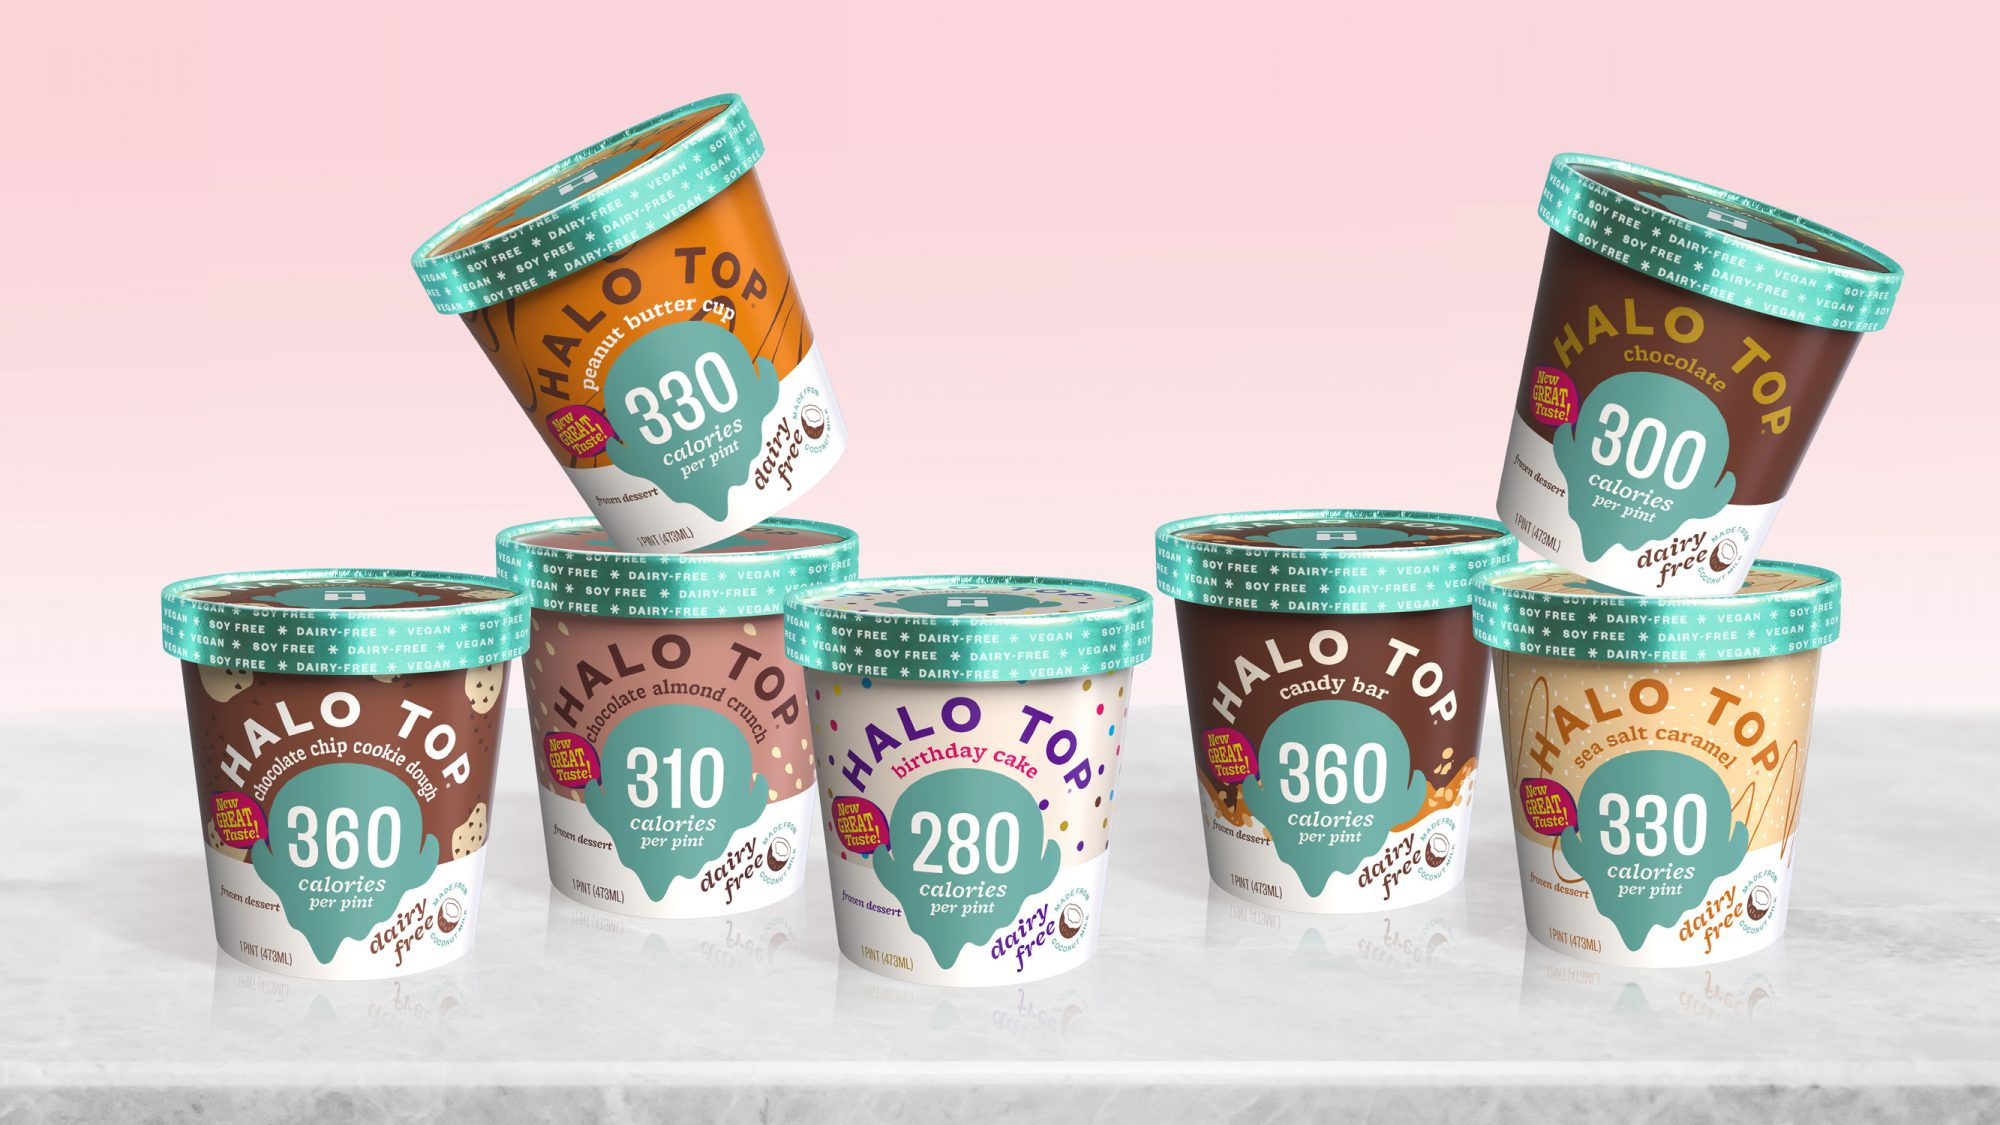 Halo Top Dairy Free Ice Cream